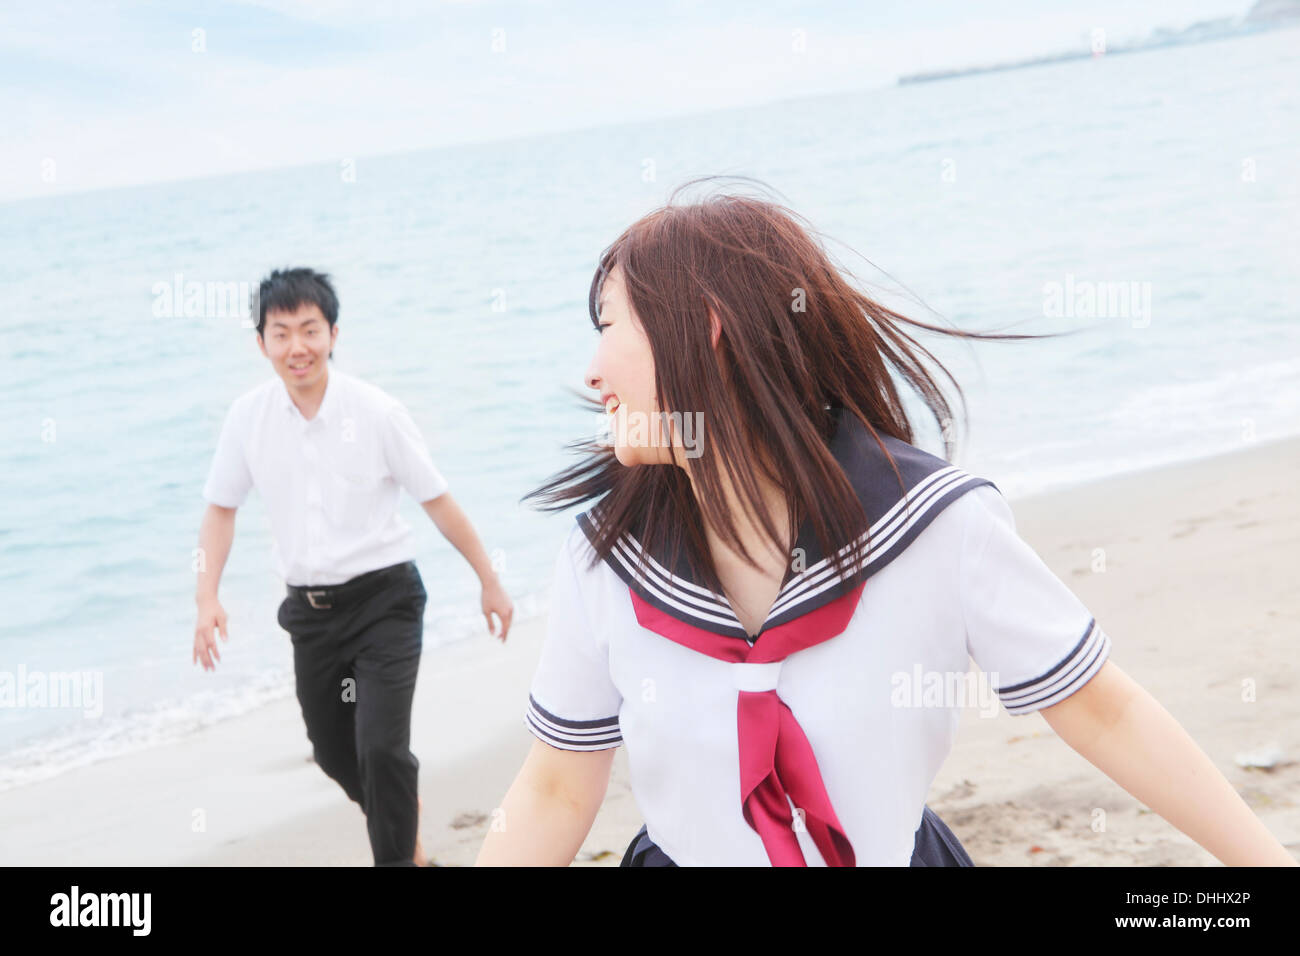 Young couple wearing school uniform running on sandy beach - Stock Image